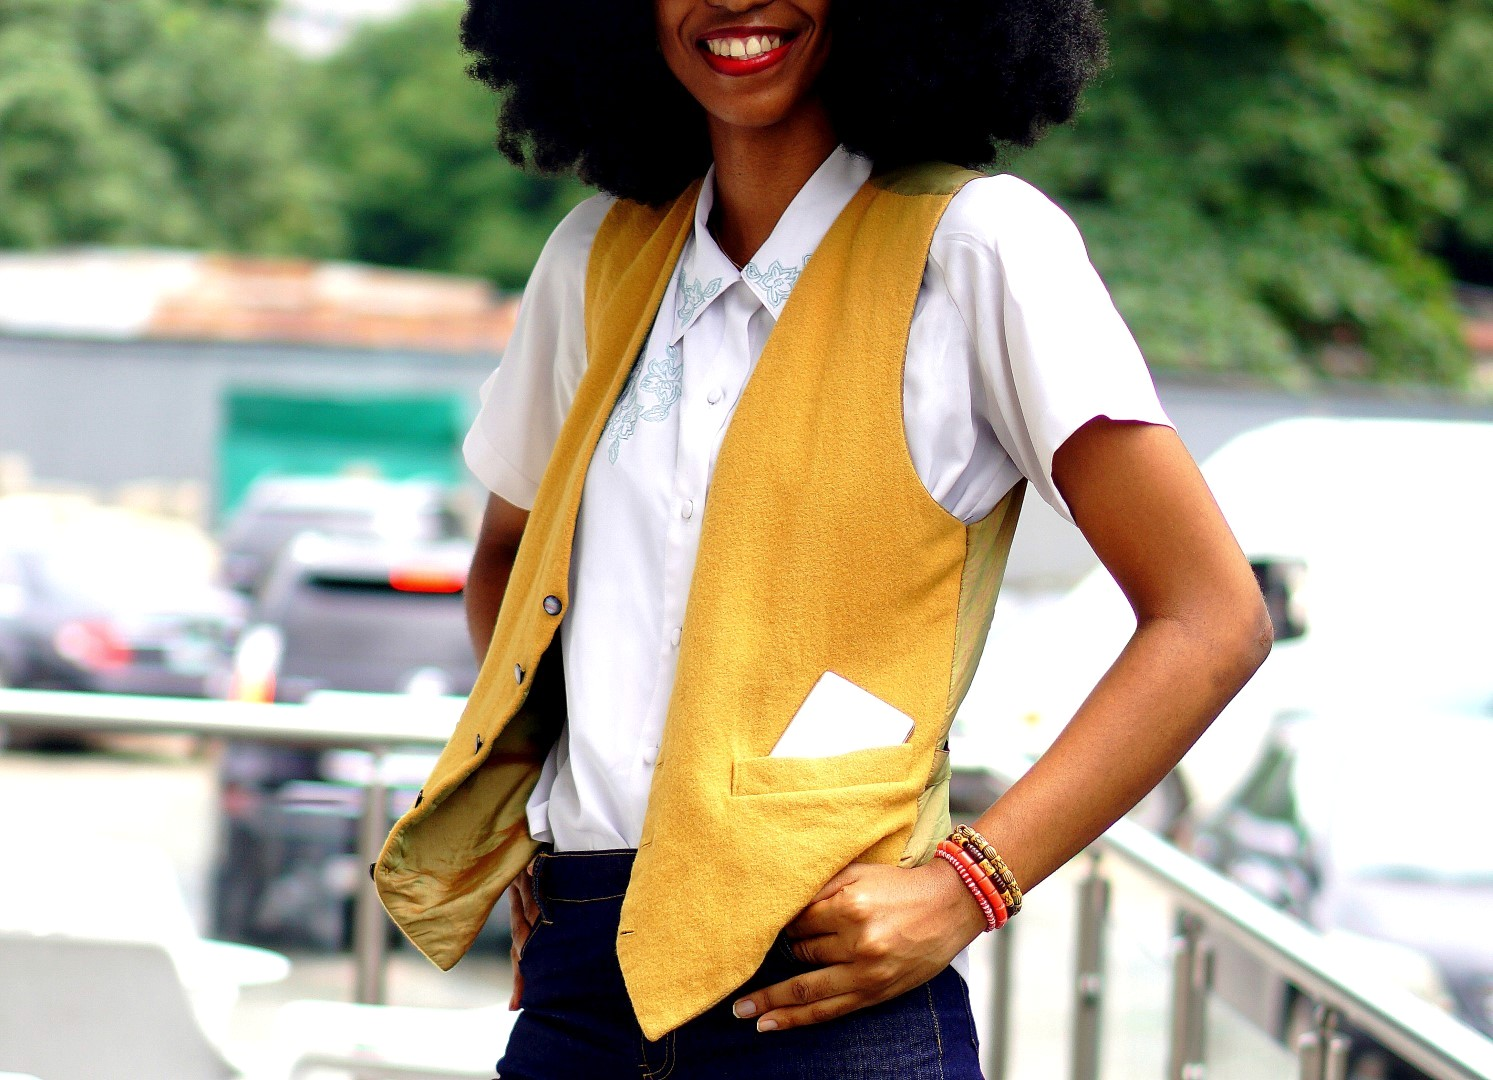 Nigerian Fashion blogger Cassie Daves wearing a mustard waistcoat and white shirt.